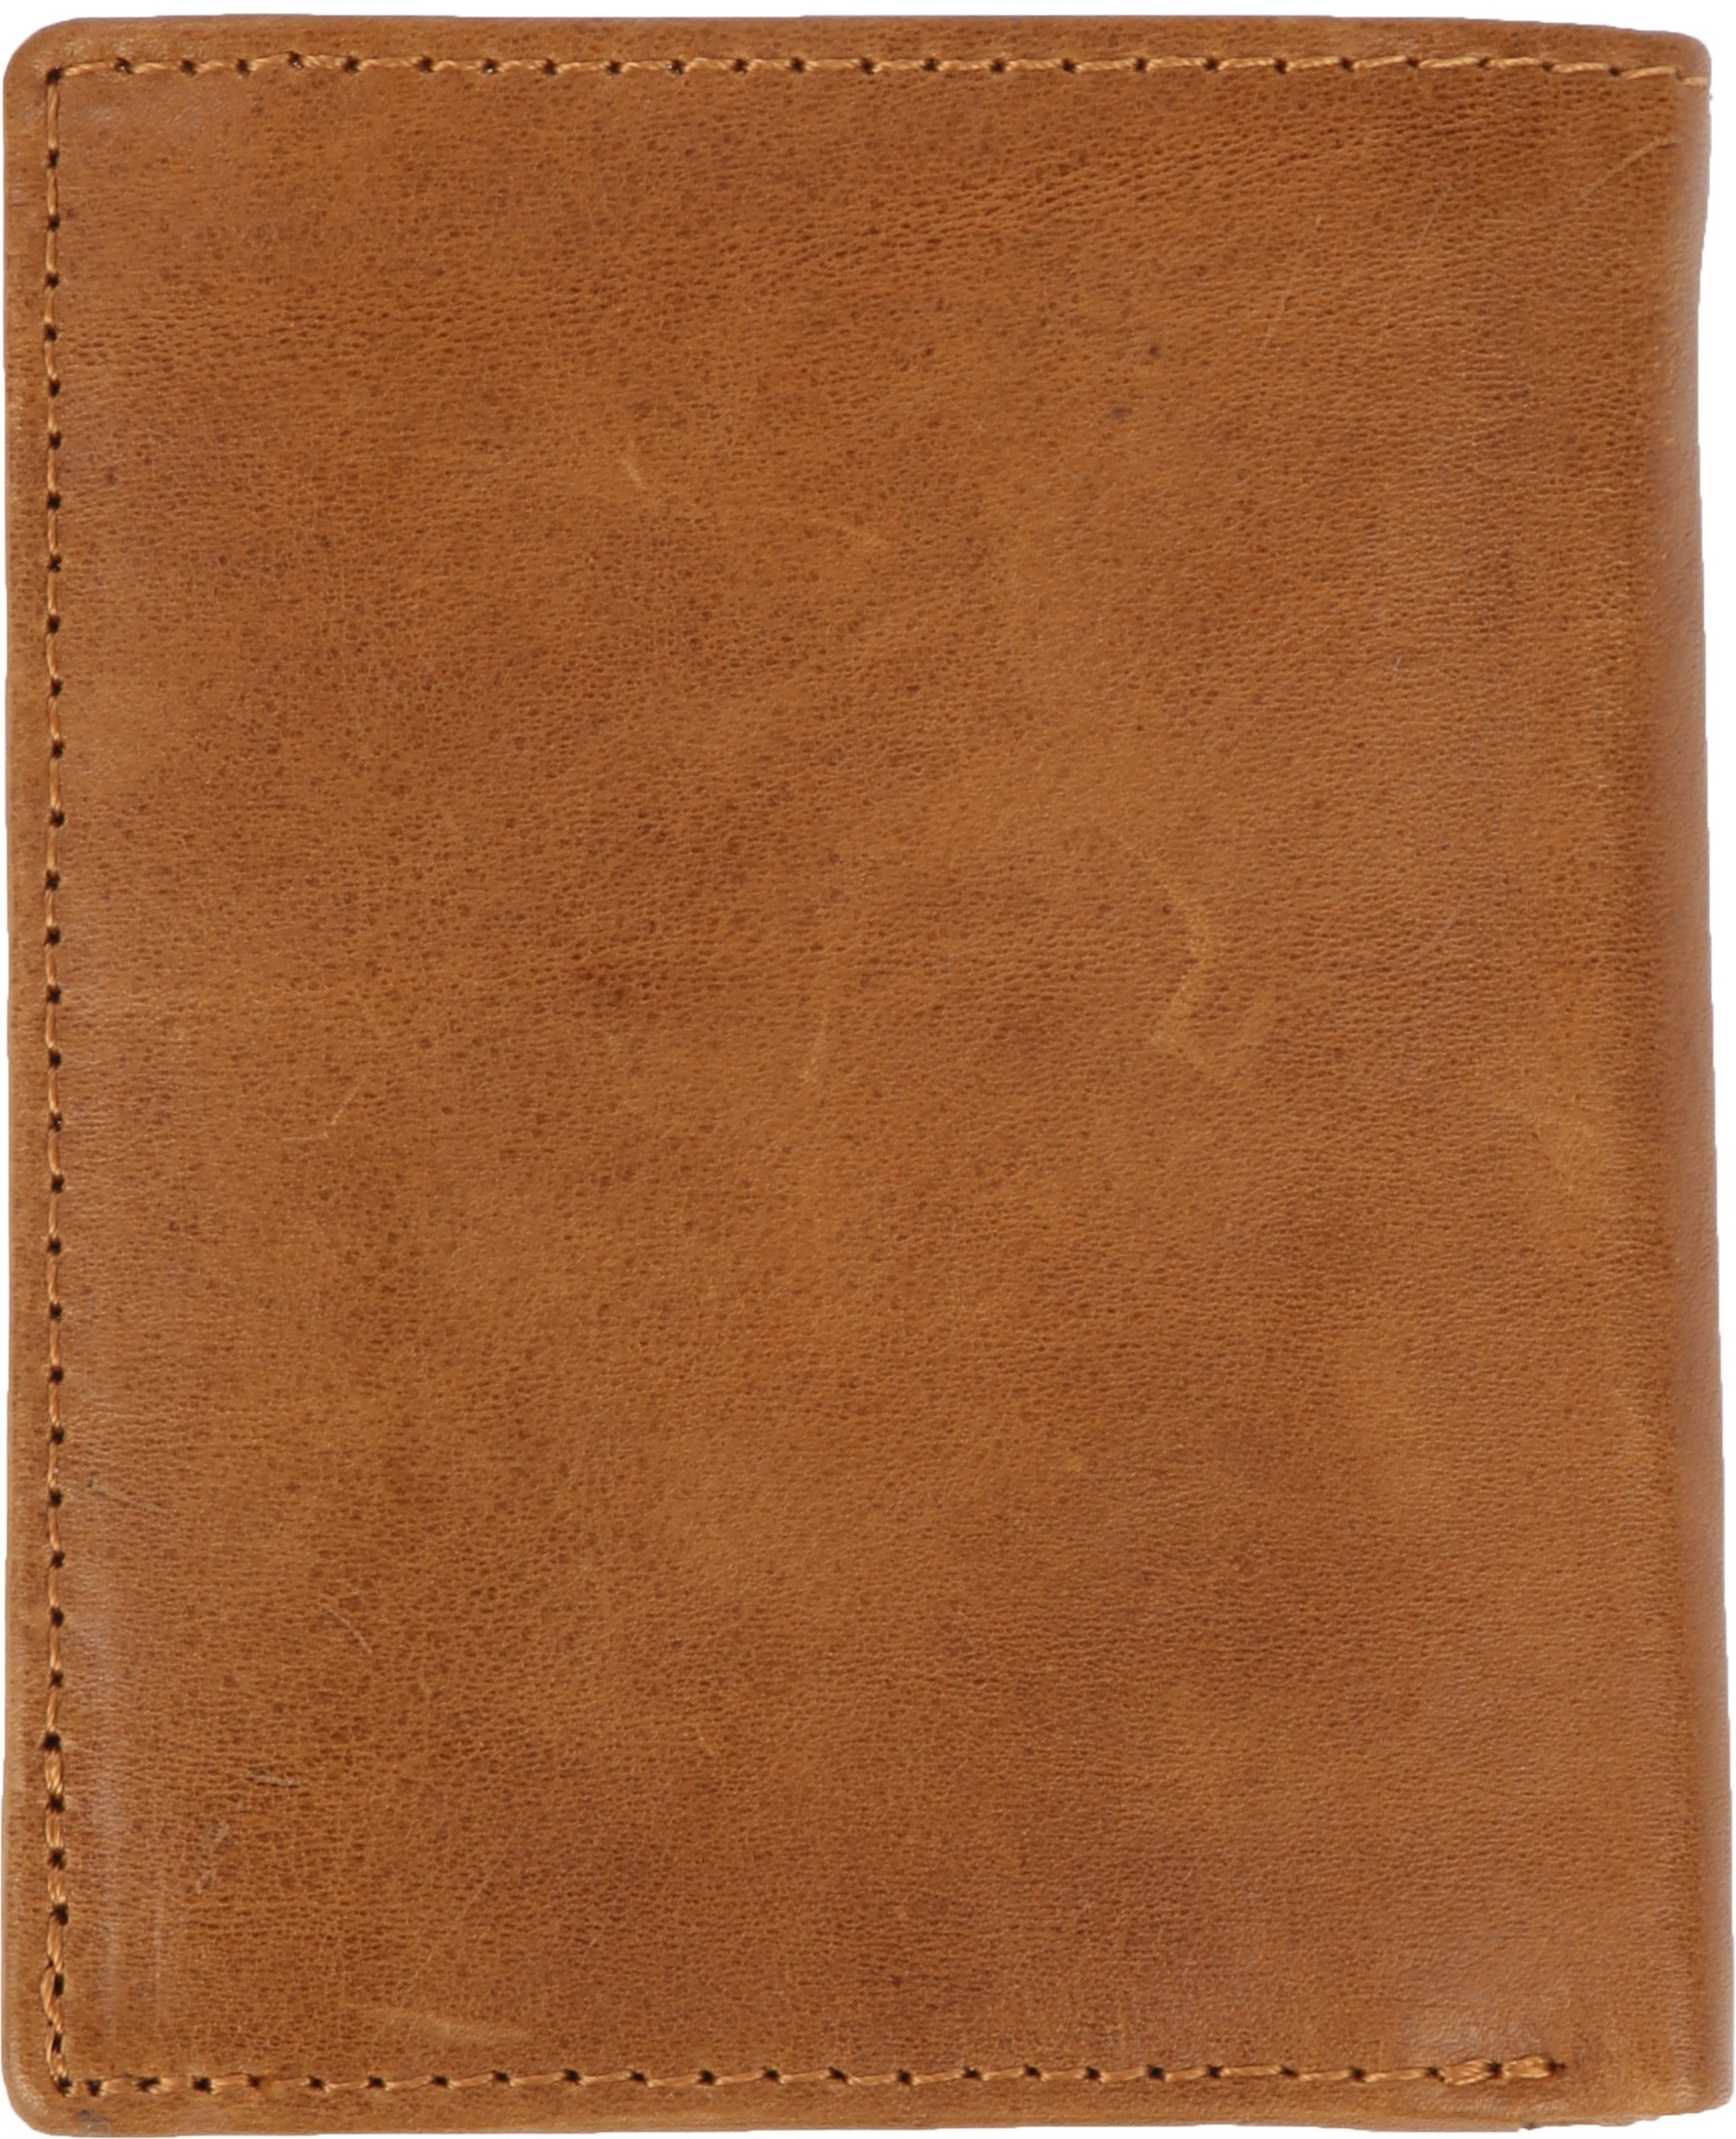 Suitable Wallet Nikkei Light Brown Leather - Skim Proof foto 4